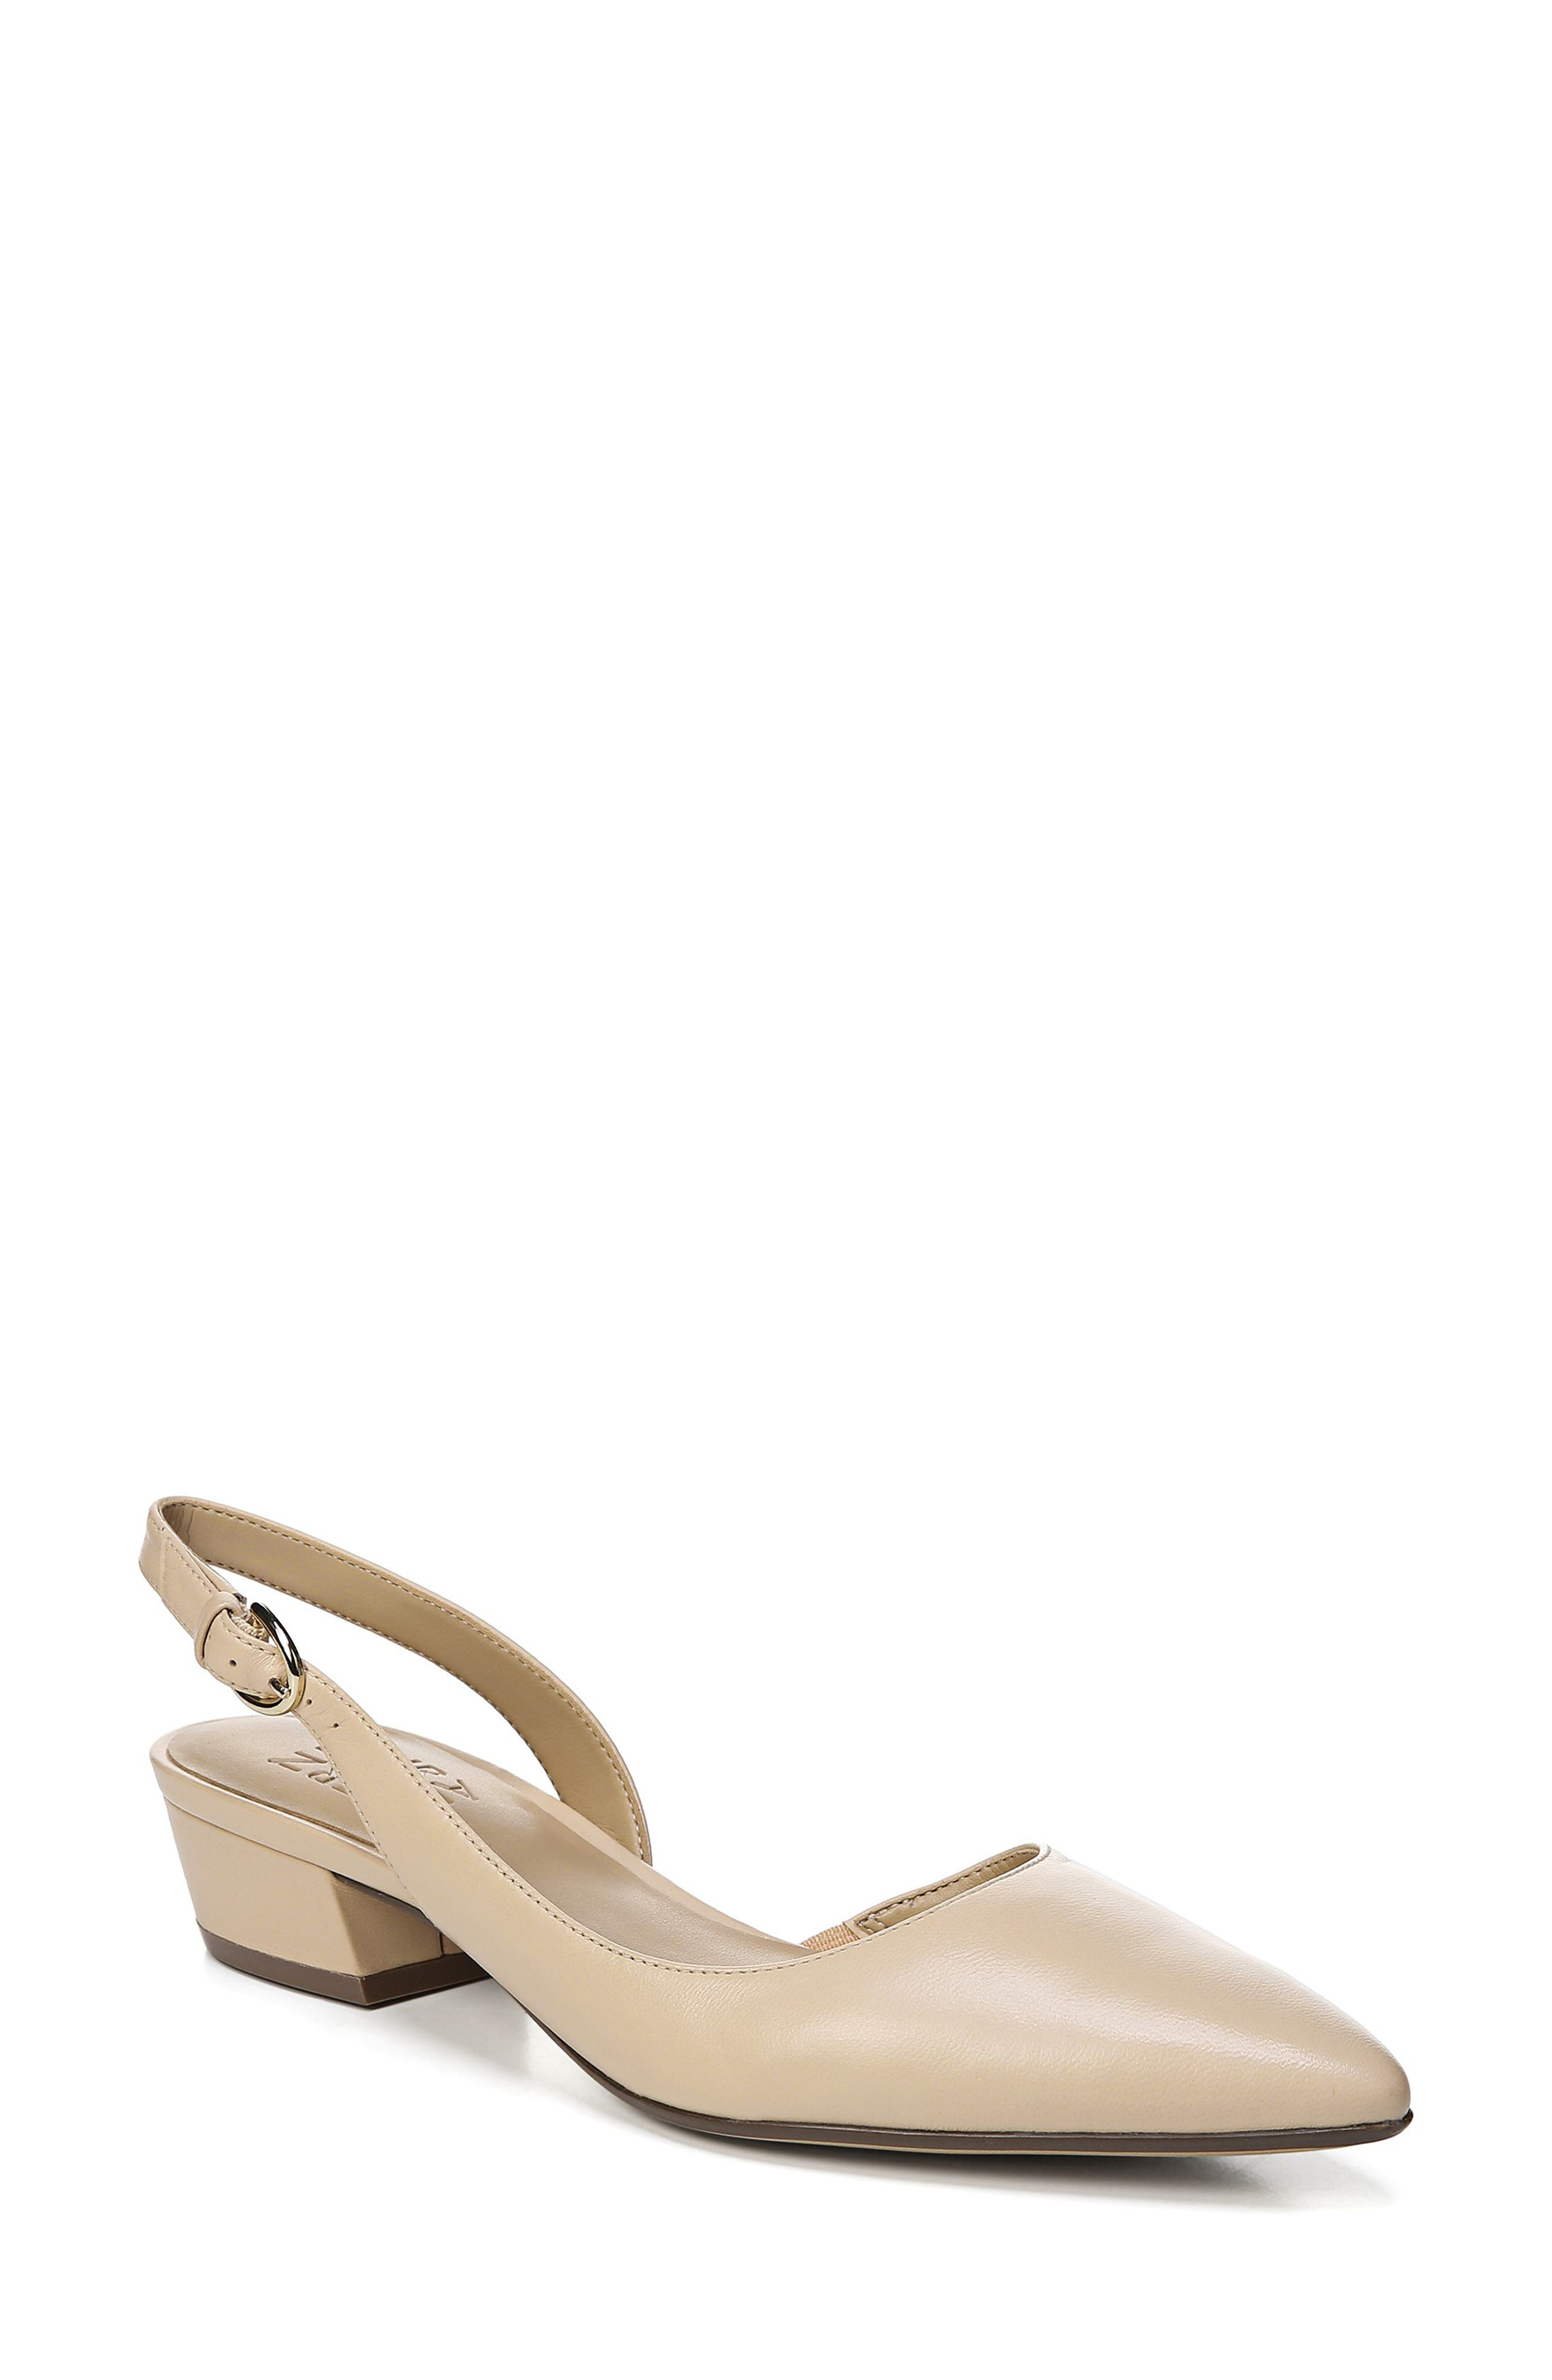 Naturalizer Banks Pump, Beige